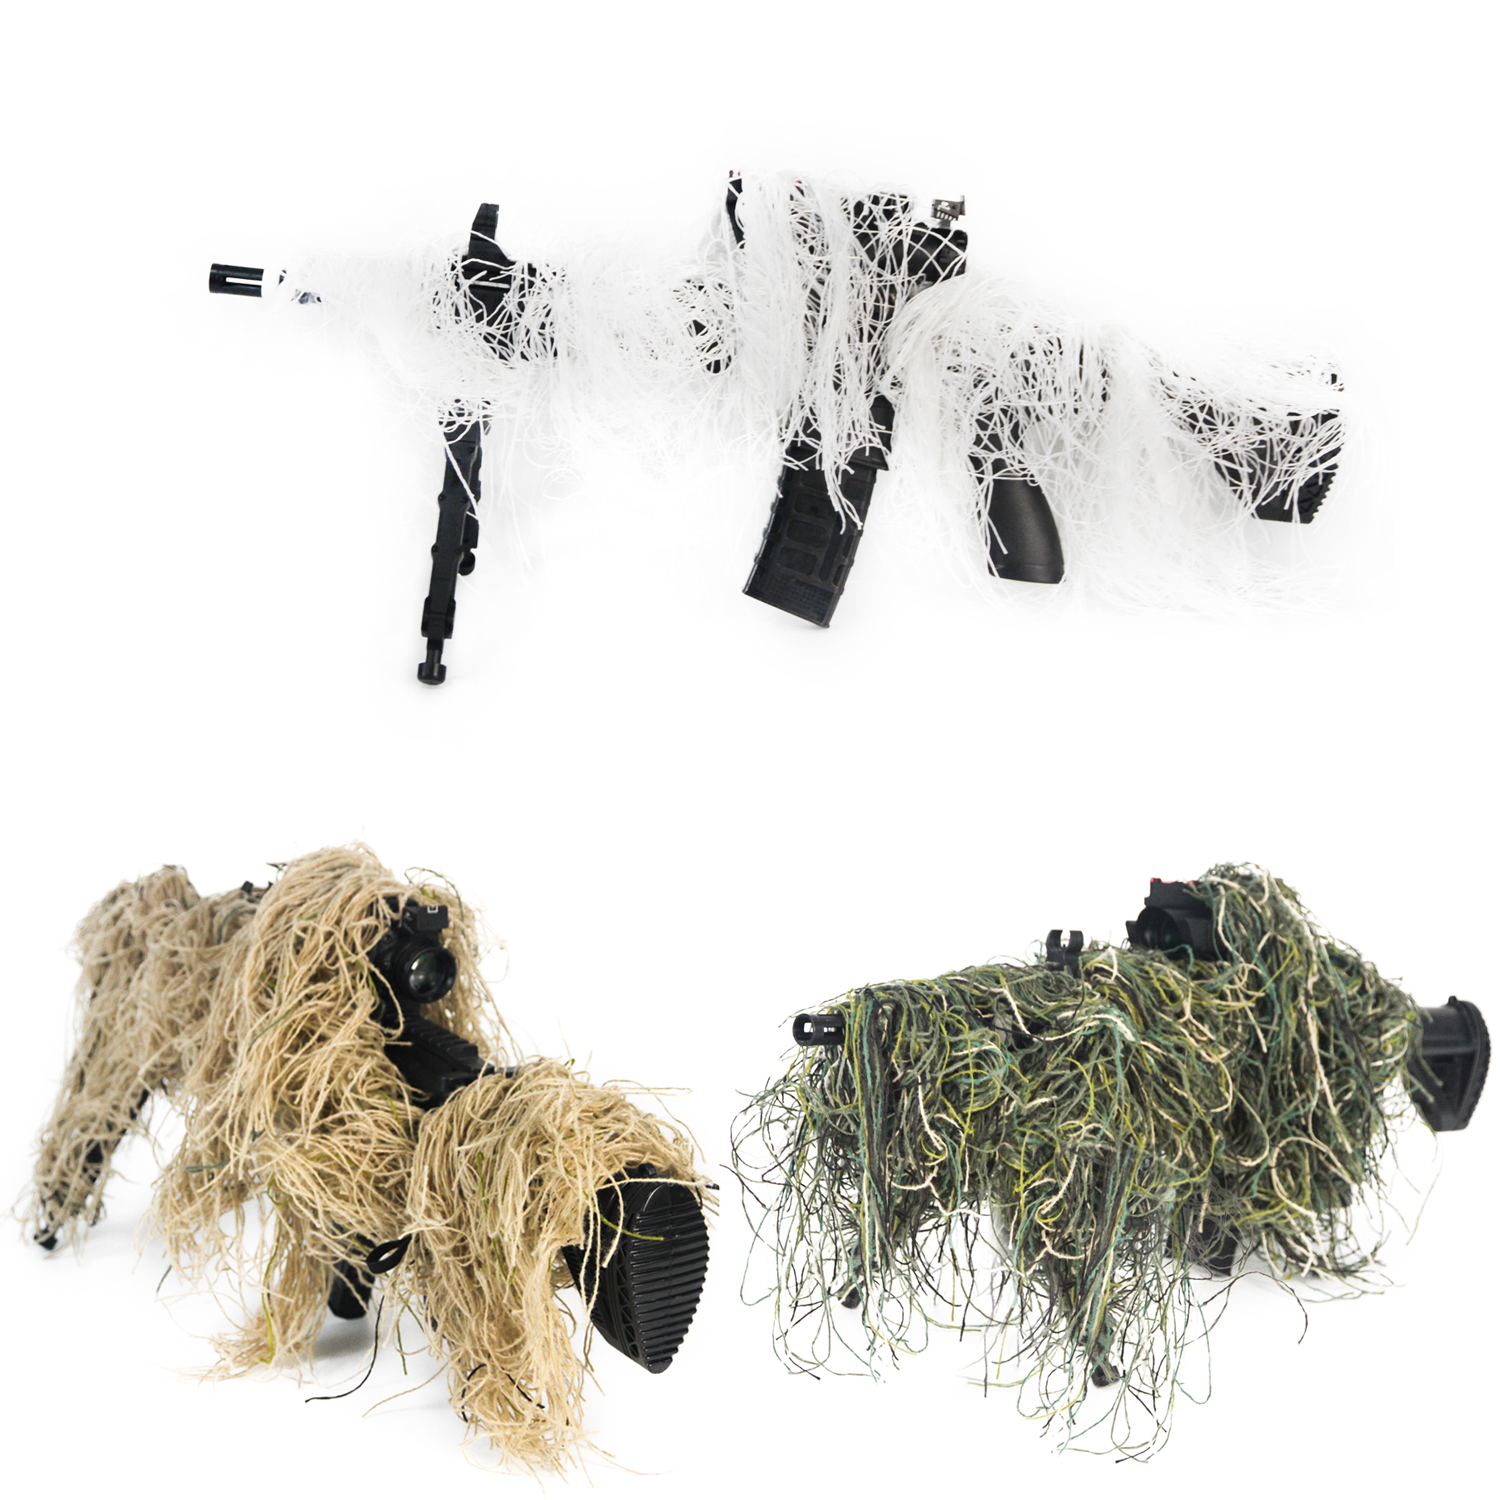 GUGULUZA 3D Rifle Gun Wrap Cover Use Elastic Strap For Camouflage Hunting Ghillie Suit